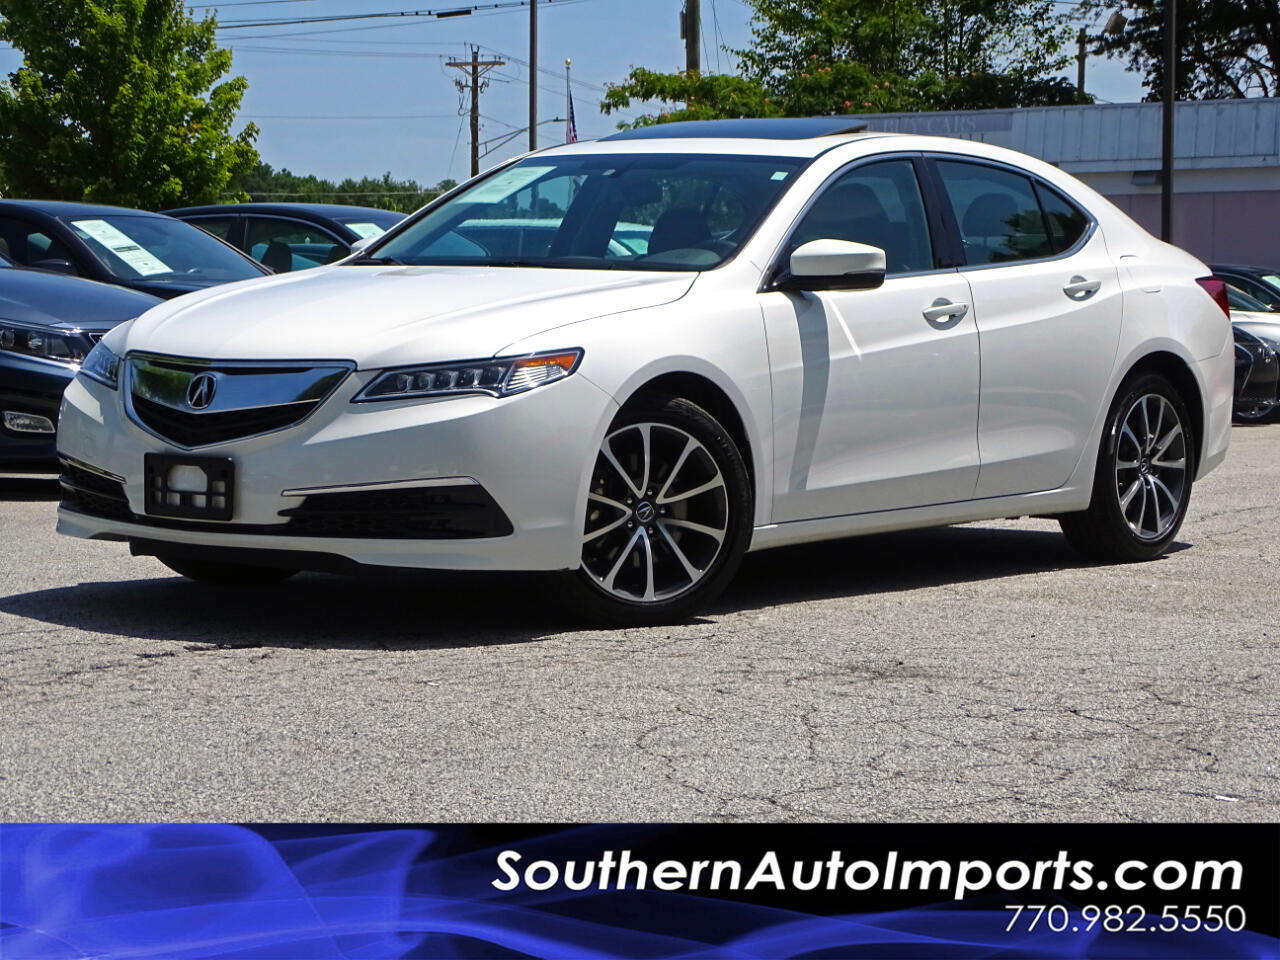 2016 Acura TLX 3.5L V6 w/Espresso Leather Seats